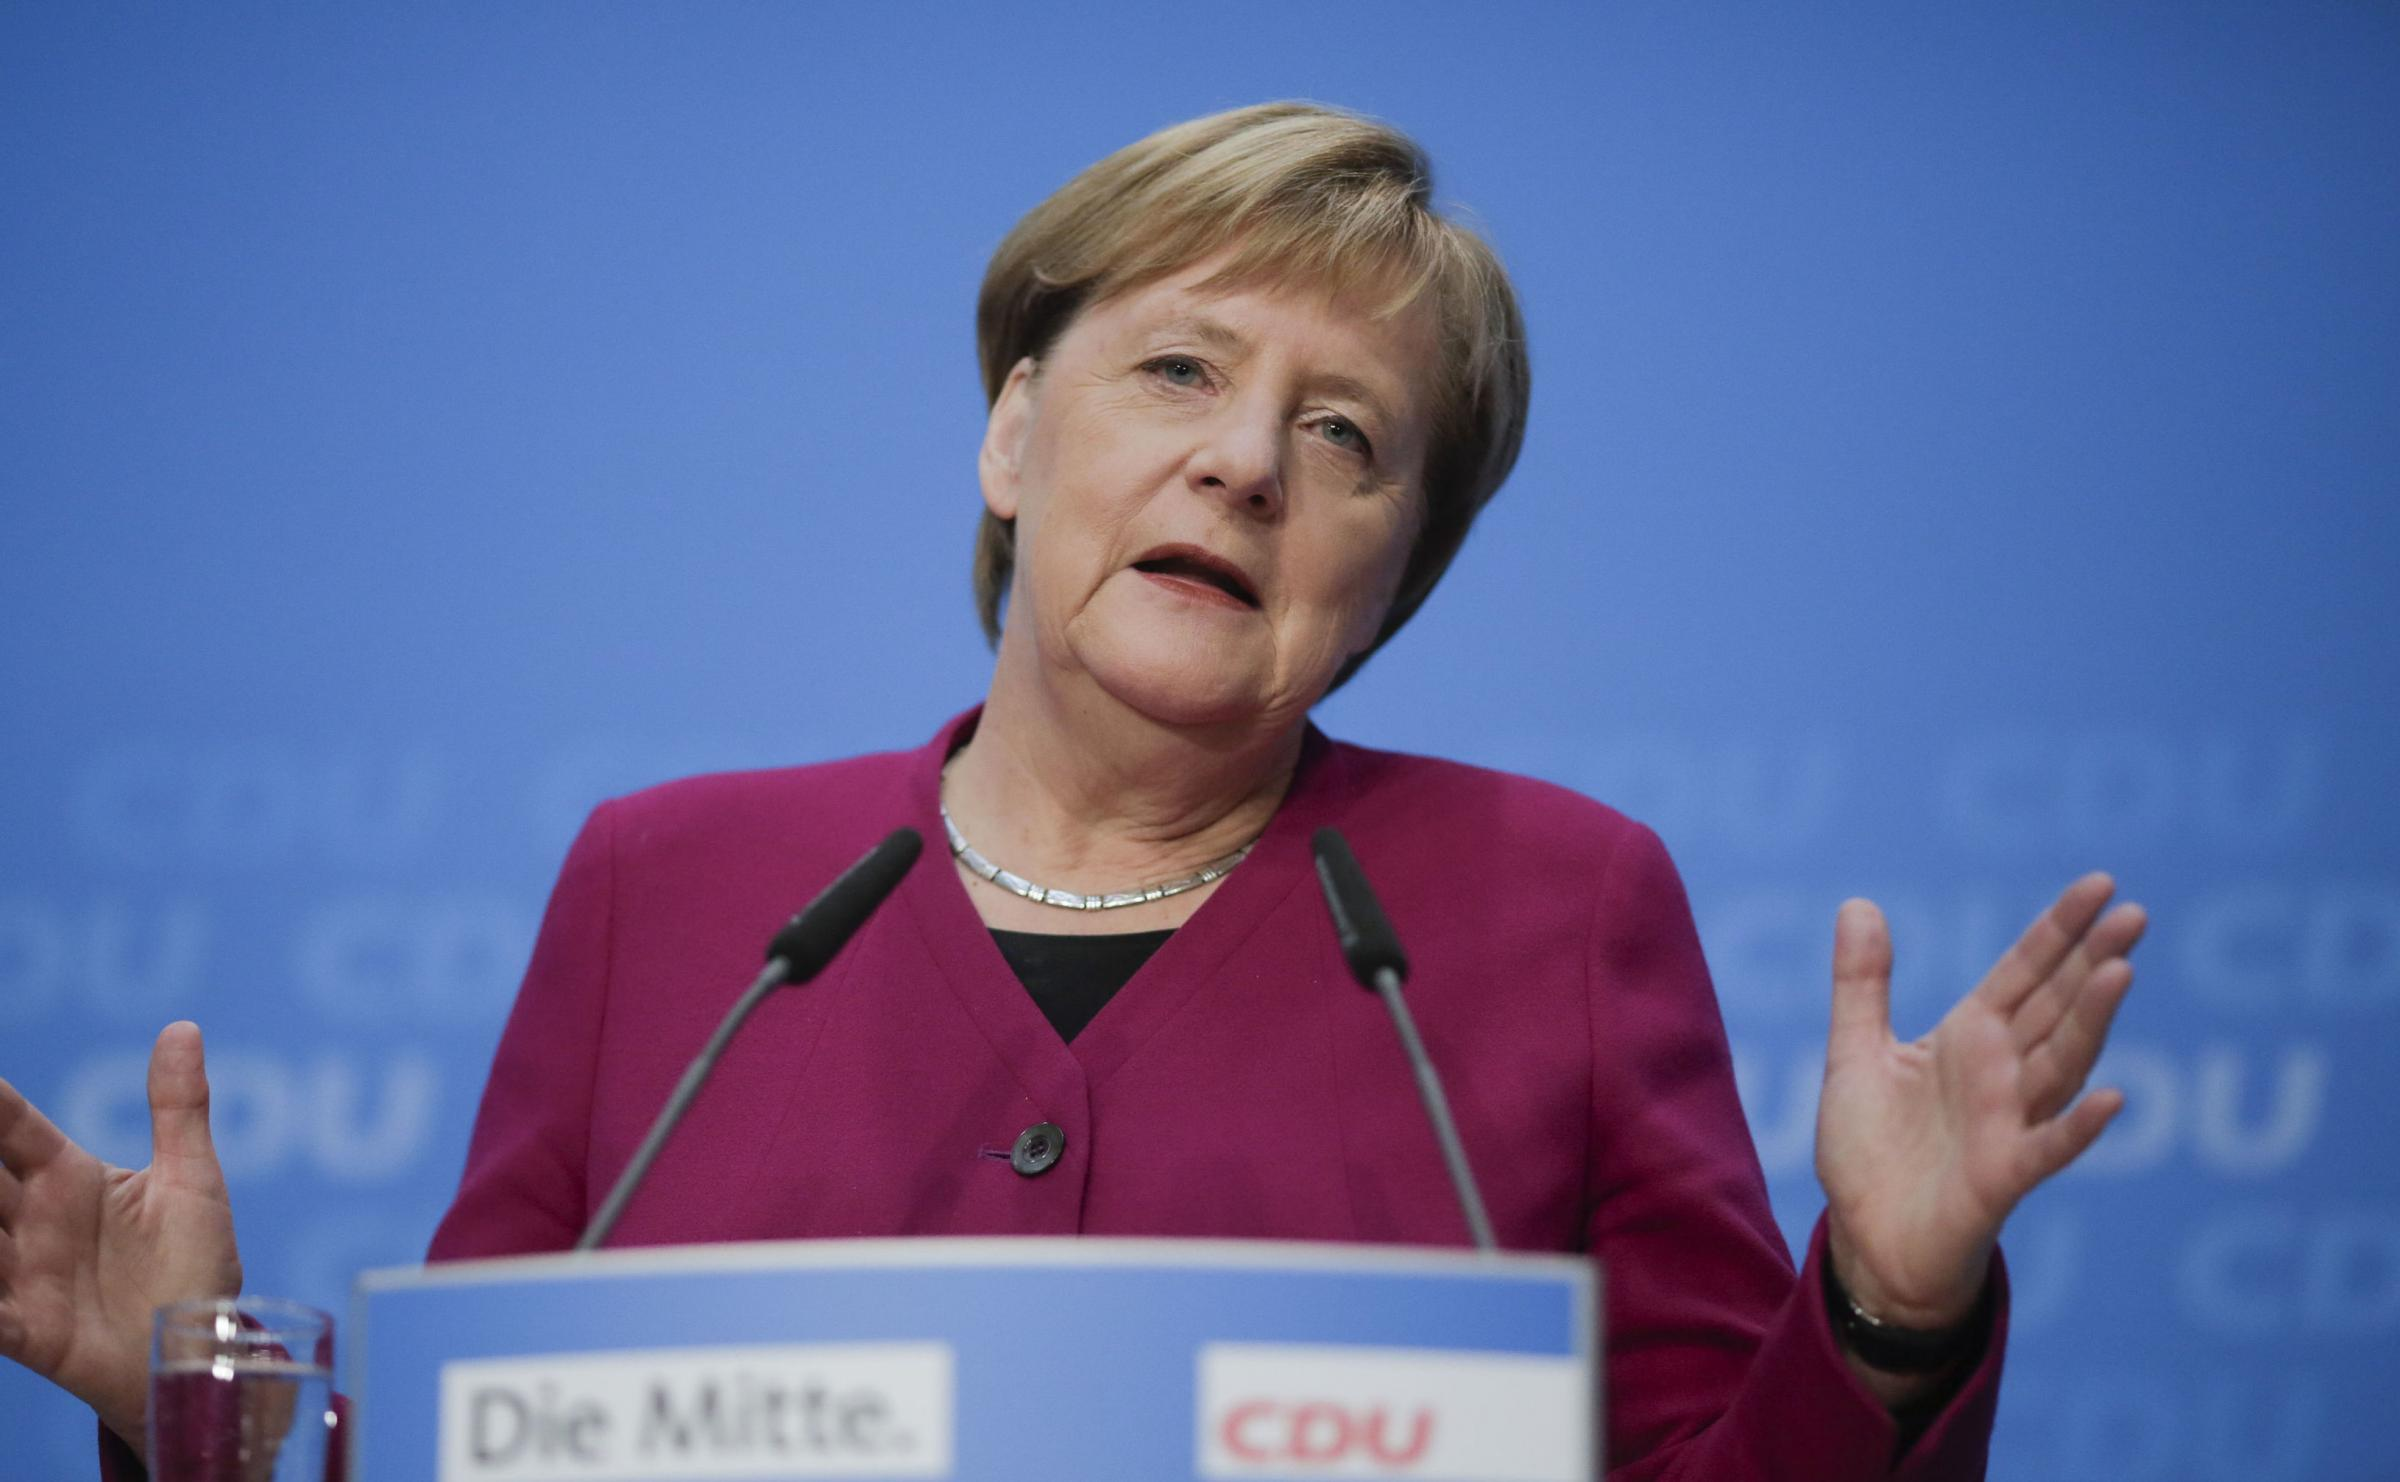 German data breach affects hundreds of politicians